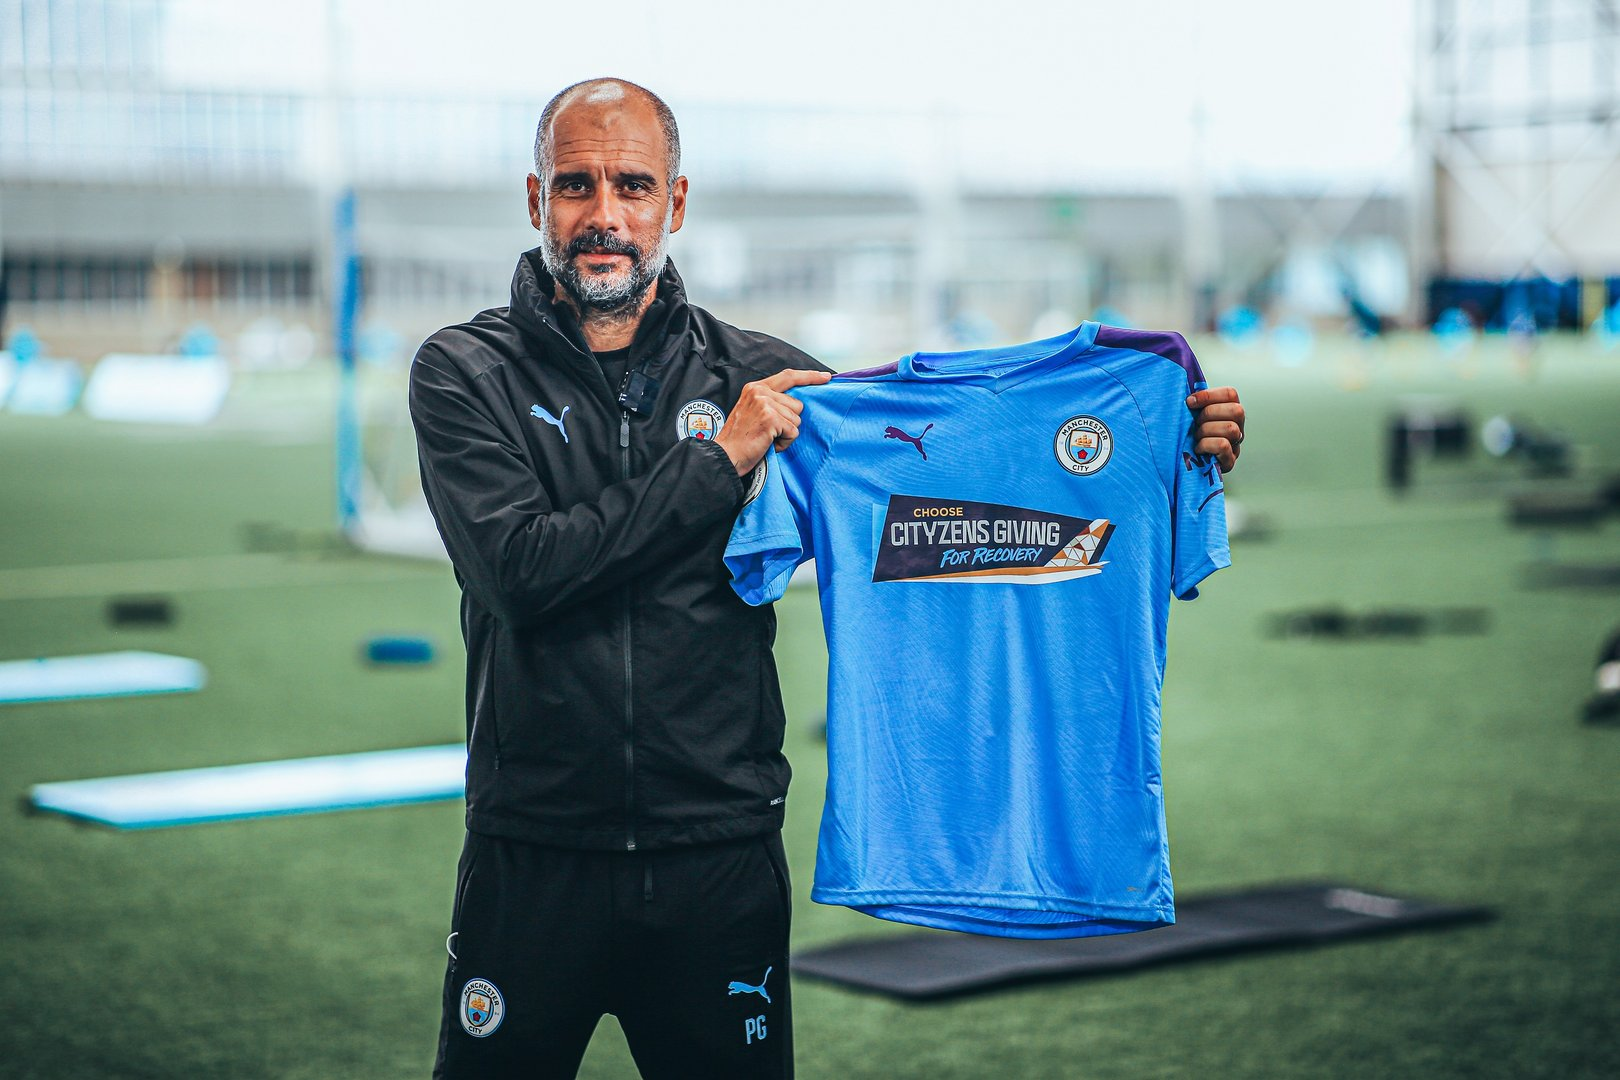 Cityzens Giving for recovery: Nine clubs. Millions of fans. Helping communities